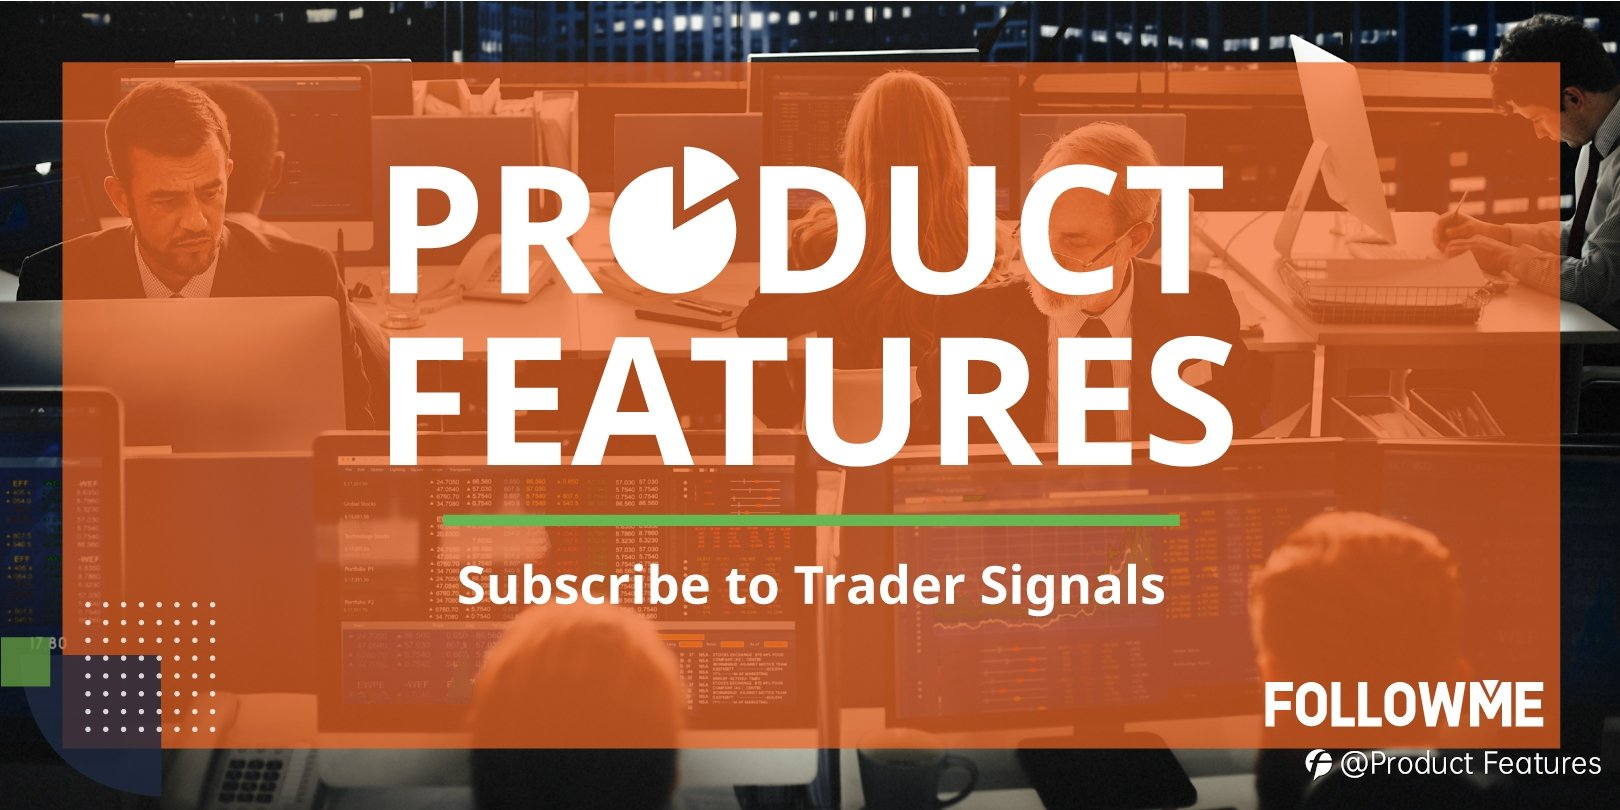 UPDATE: Subscribe to Trader Signals